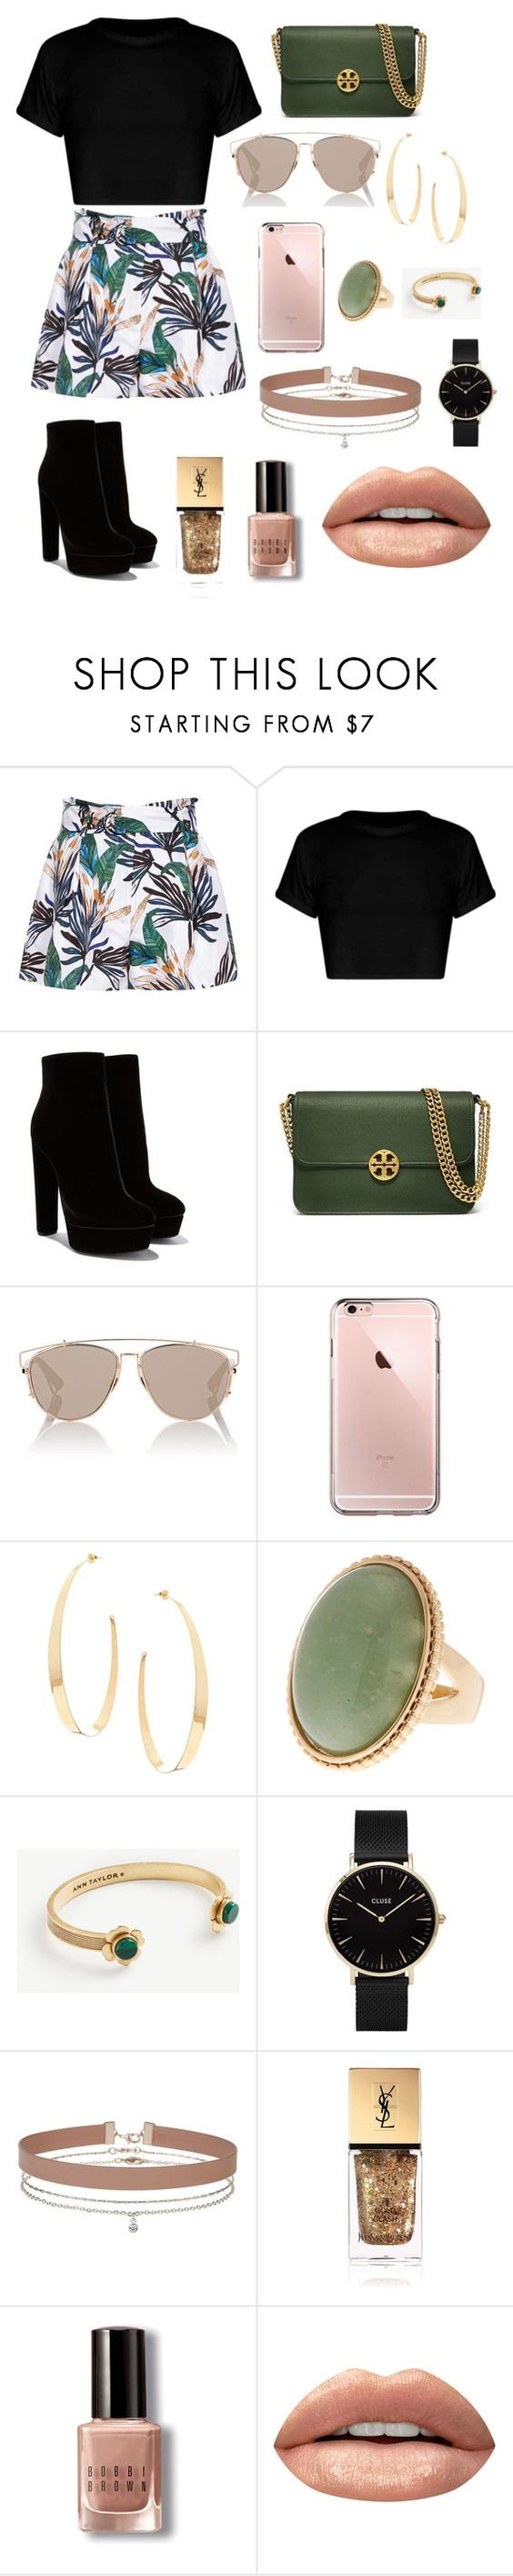 """Untitled #4"" by soninha97 on Polyvore featuring Reiss, Tory Burch, Christian Dior, Lana, Ann Taylor, CLUSE, Miss Selfridge, Yves Saint Laurent, Bobbi Brown Cosmetics and Huda Beauty"